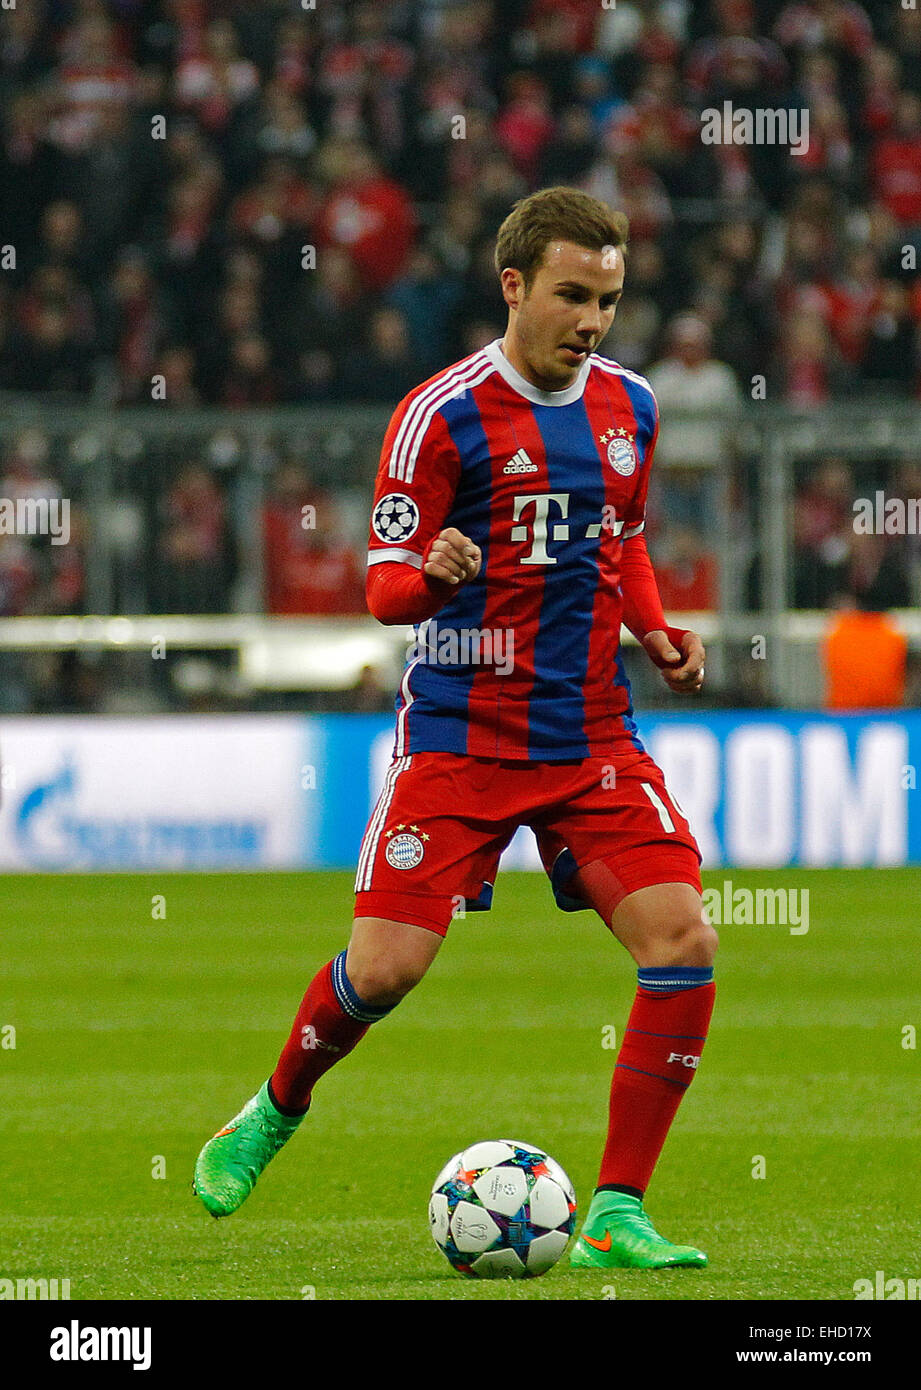 MUNICH GERMANY MARCH 11 Bayern Munich s midfielder Mario Gotze